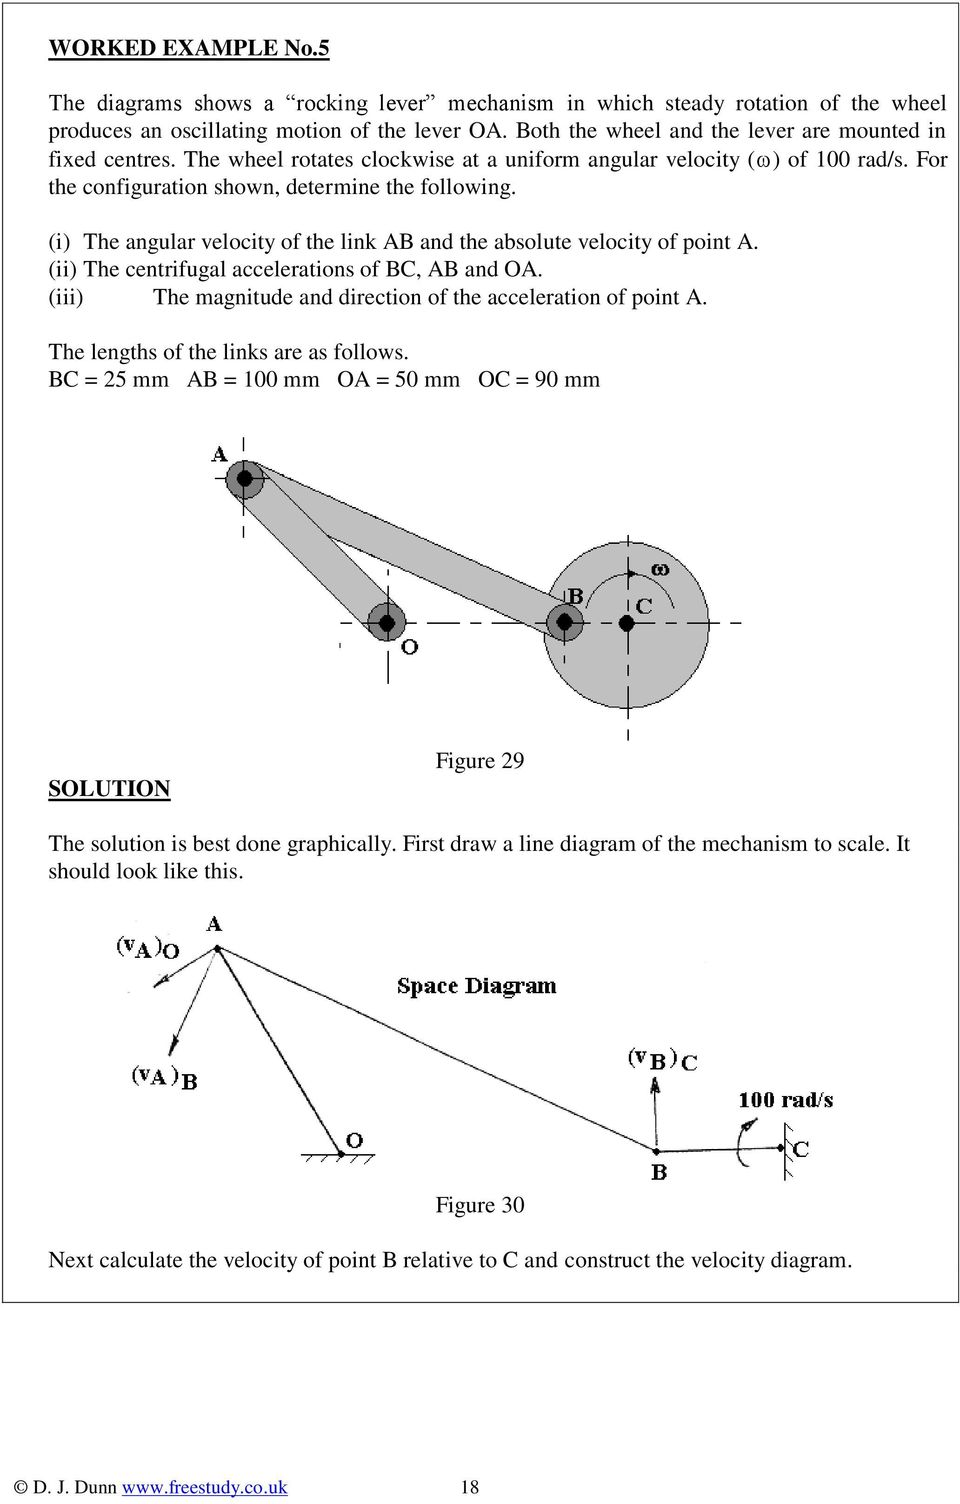 (i) The angular velocity of the link AB and the absolute velocity of point A. (ii) The centrifugal accelerations of BC, AB and OA. (iii) The magnitude and direction of the acceleration of point A.